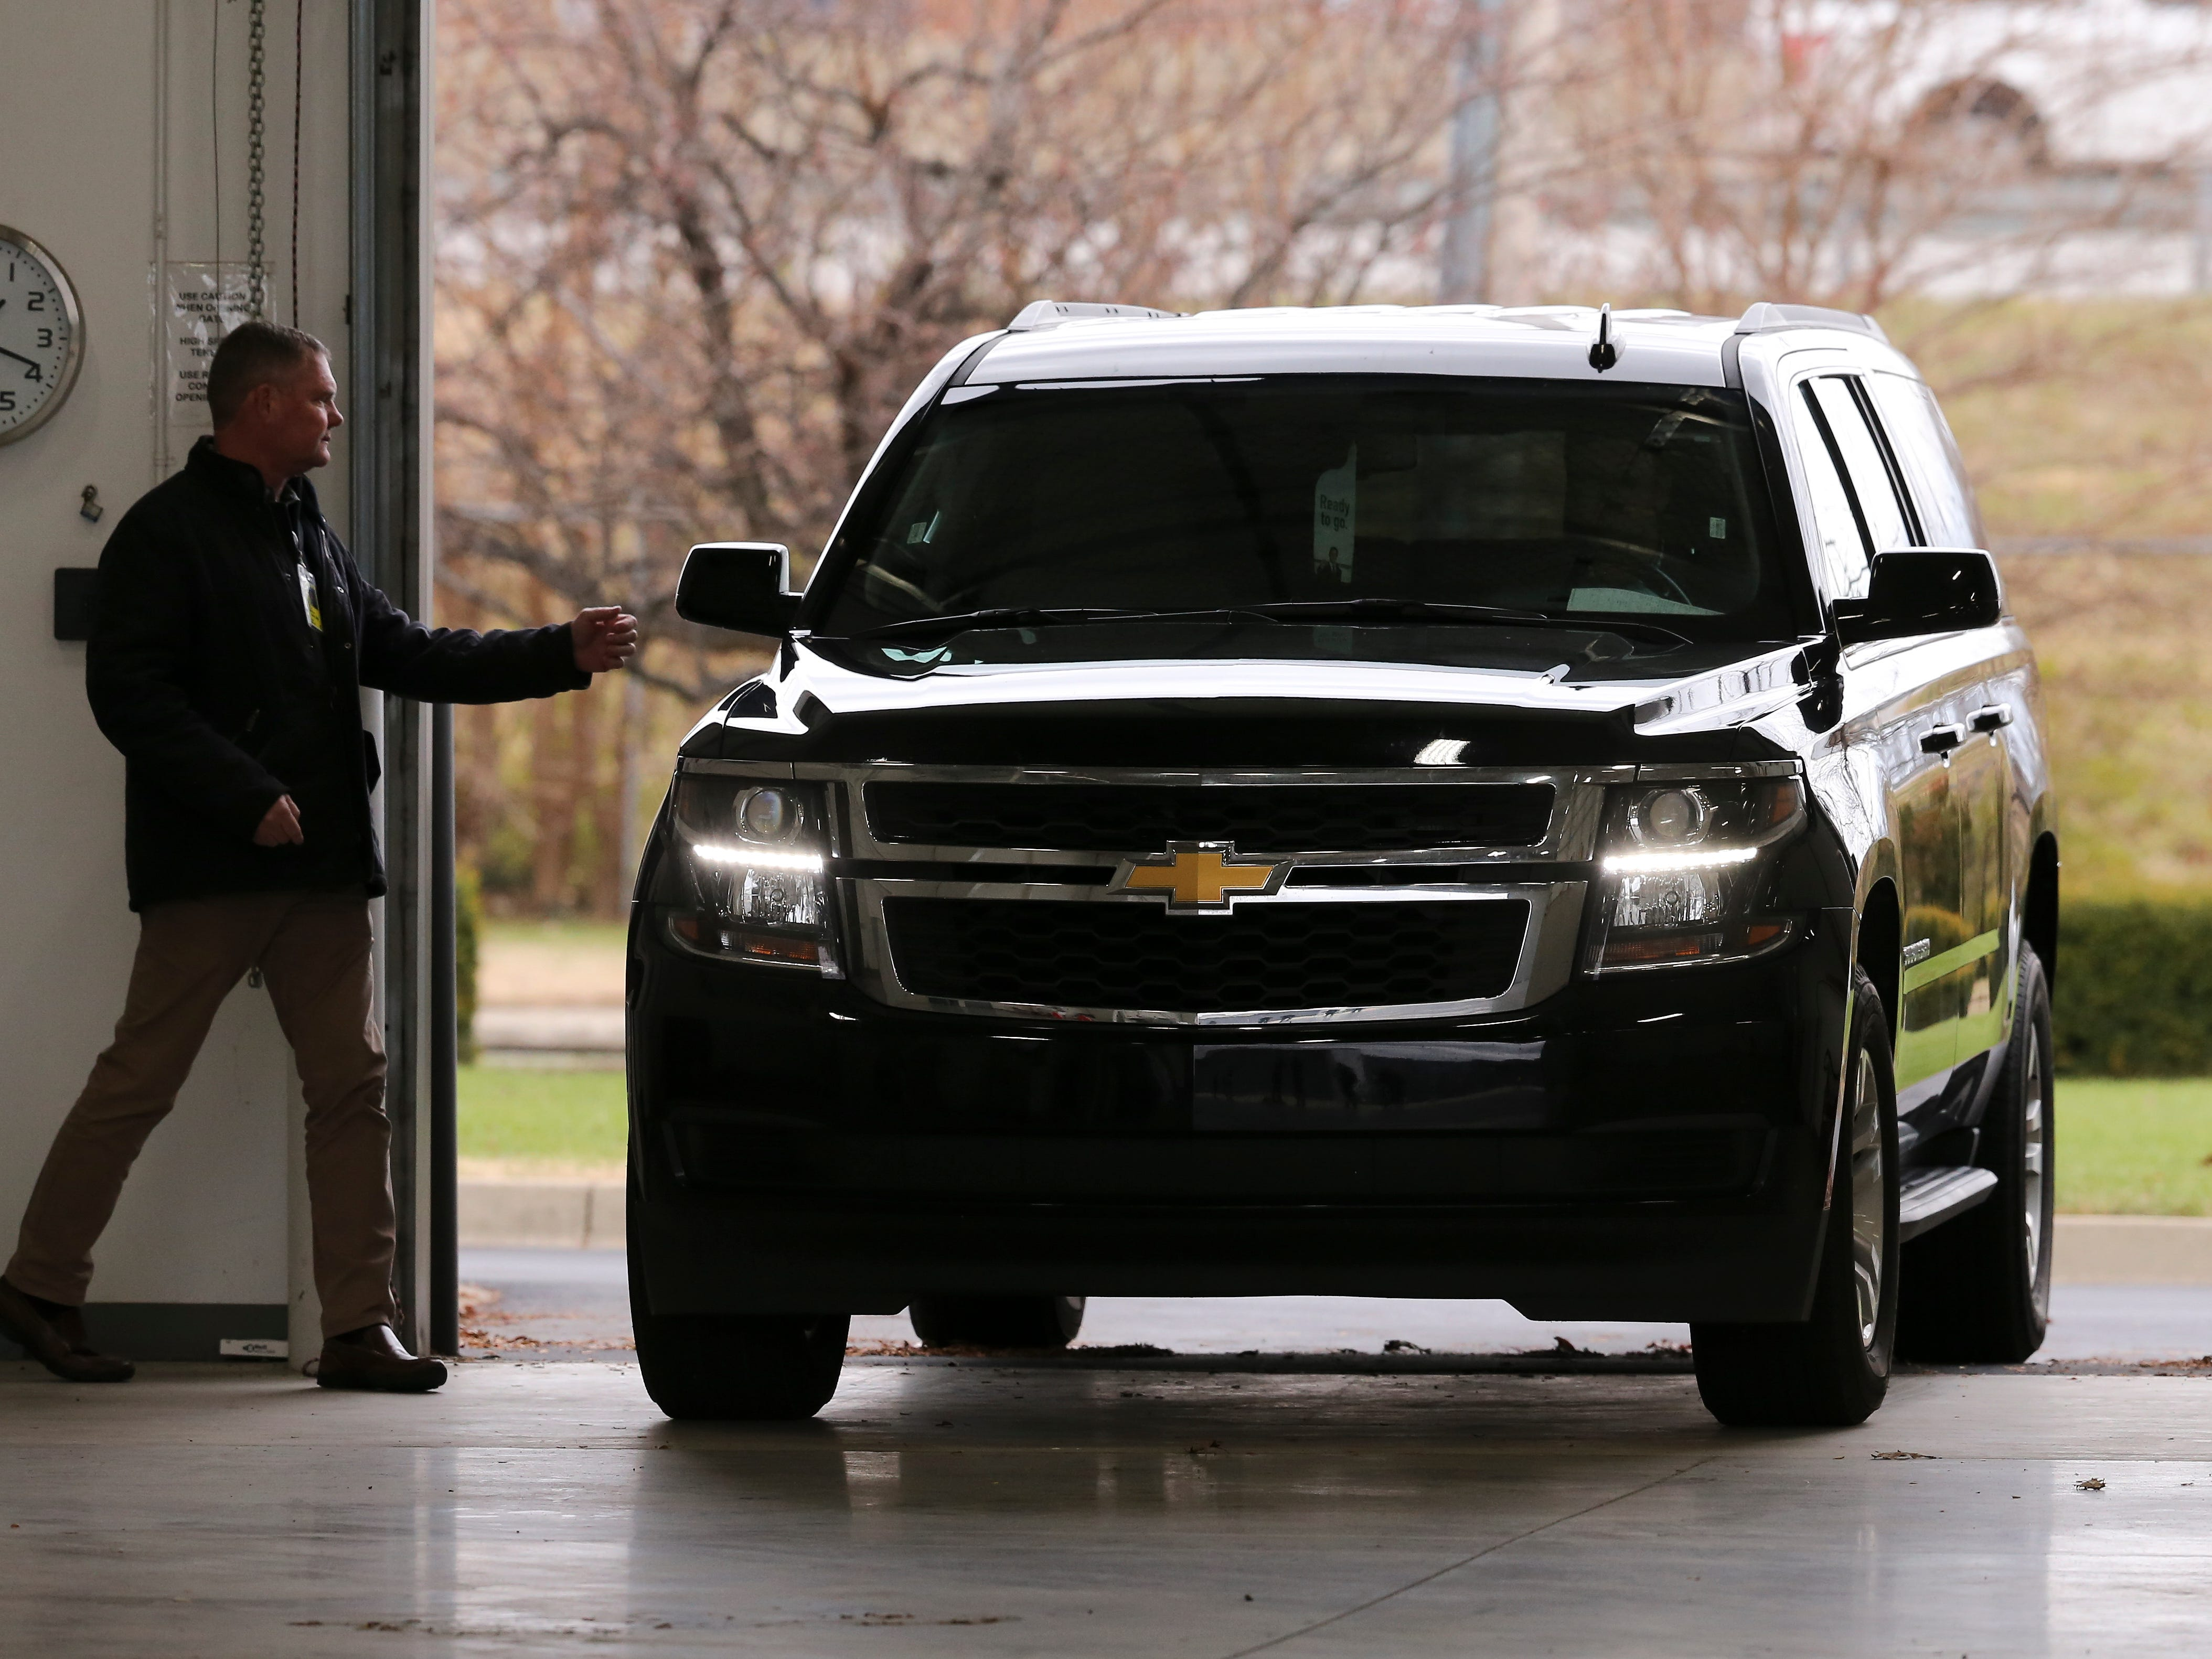 A technician opens a garage door to let an SUV into a hangar to pick up Appalachian State head football coach Scott Satterfield following his arrival in Louisville.  Satterfield expects to be named the new head football coach at U of L.  